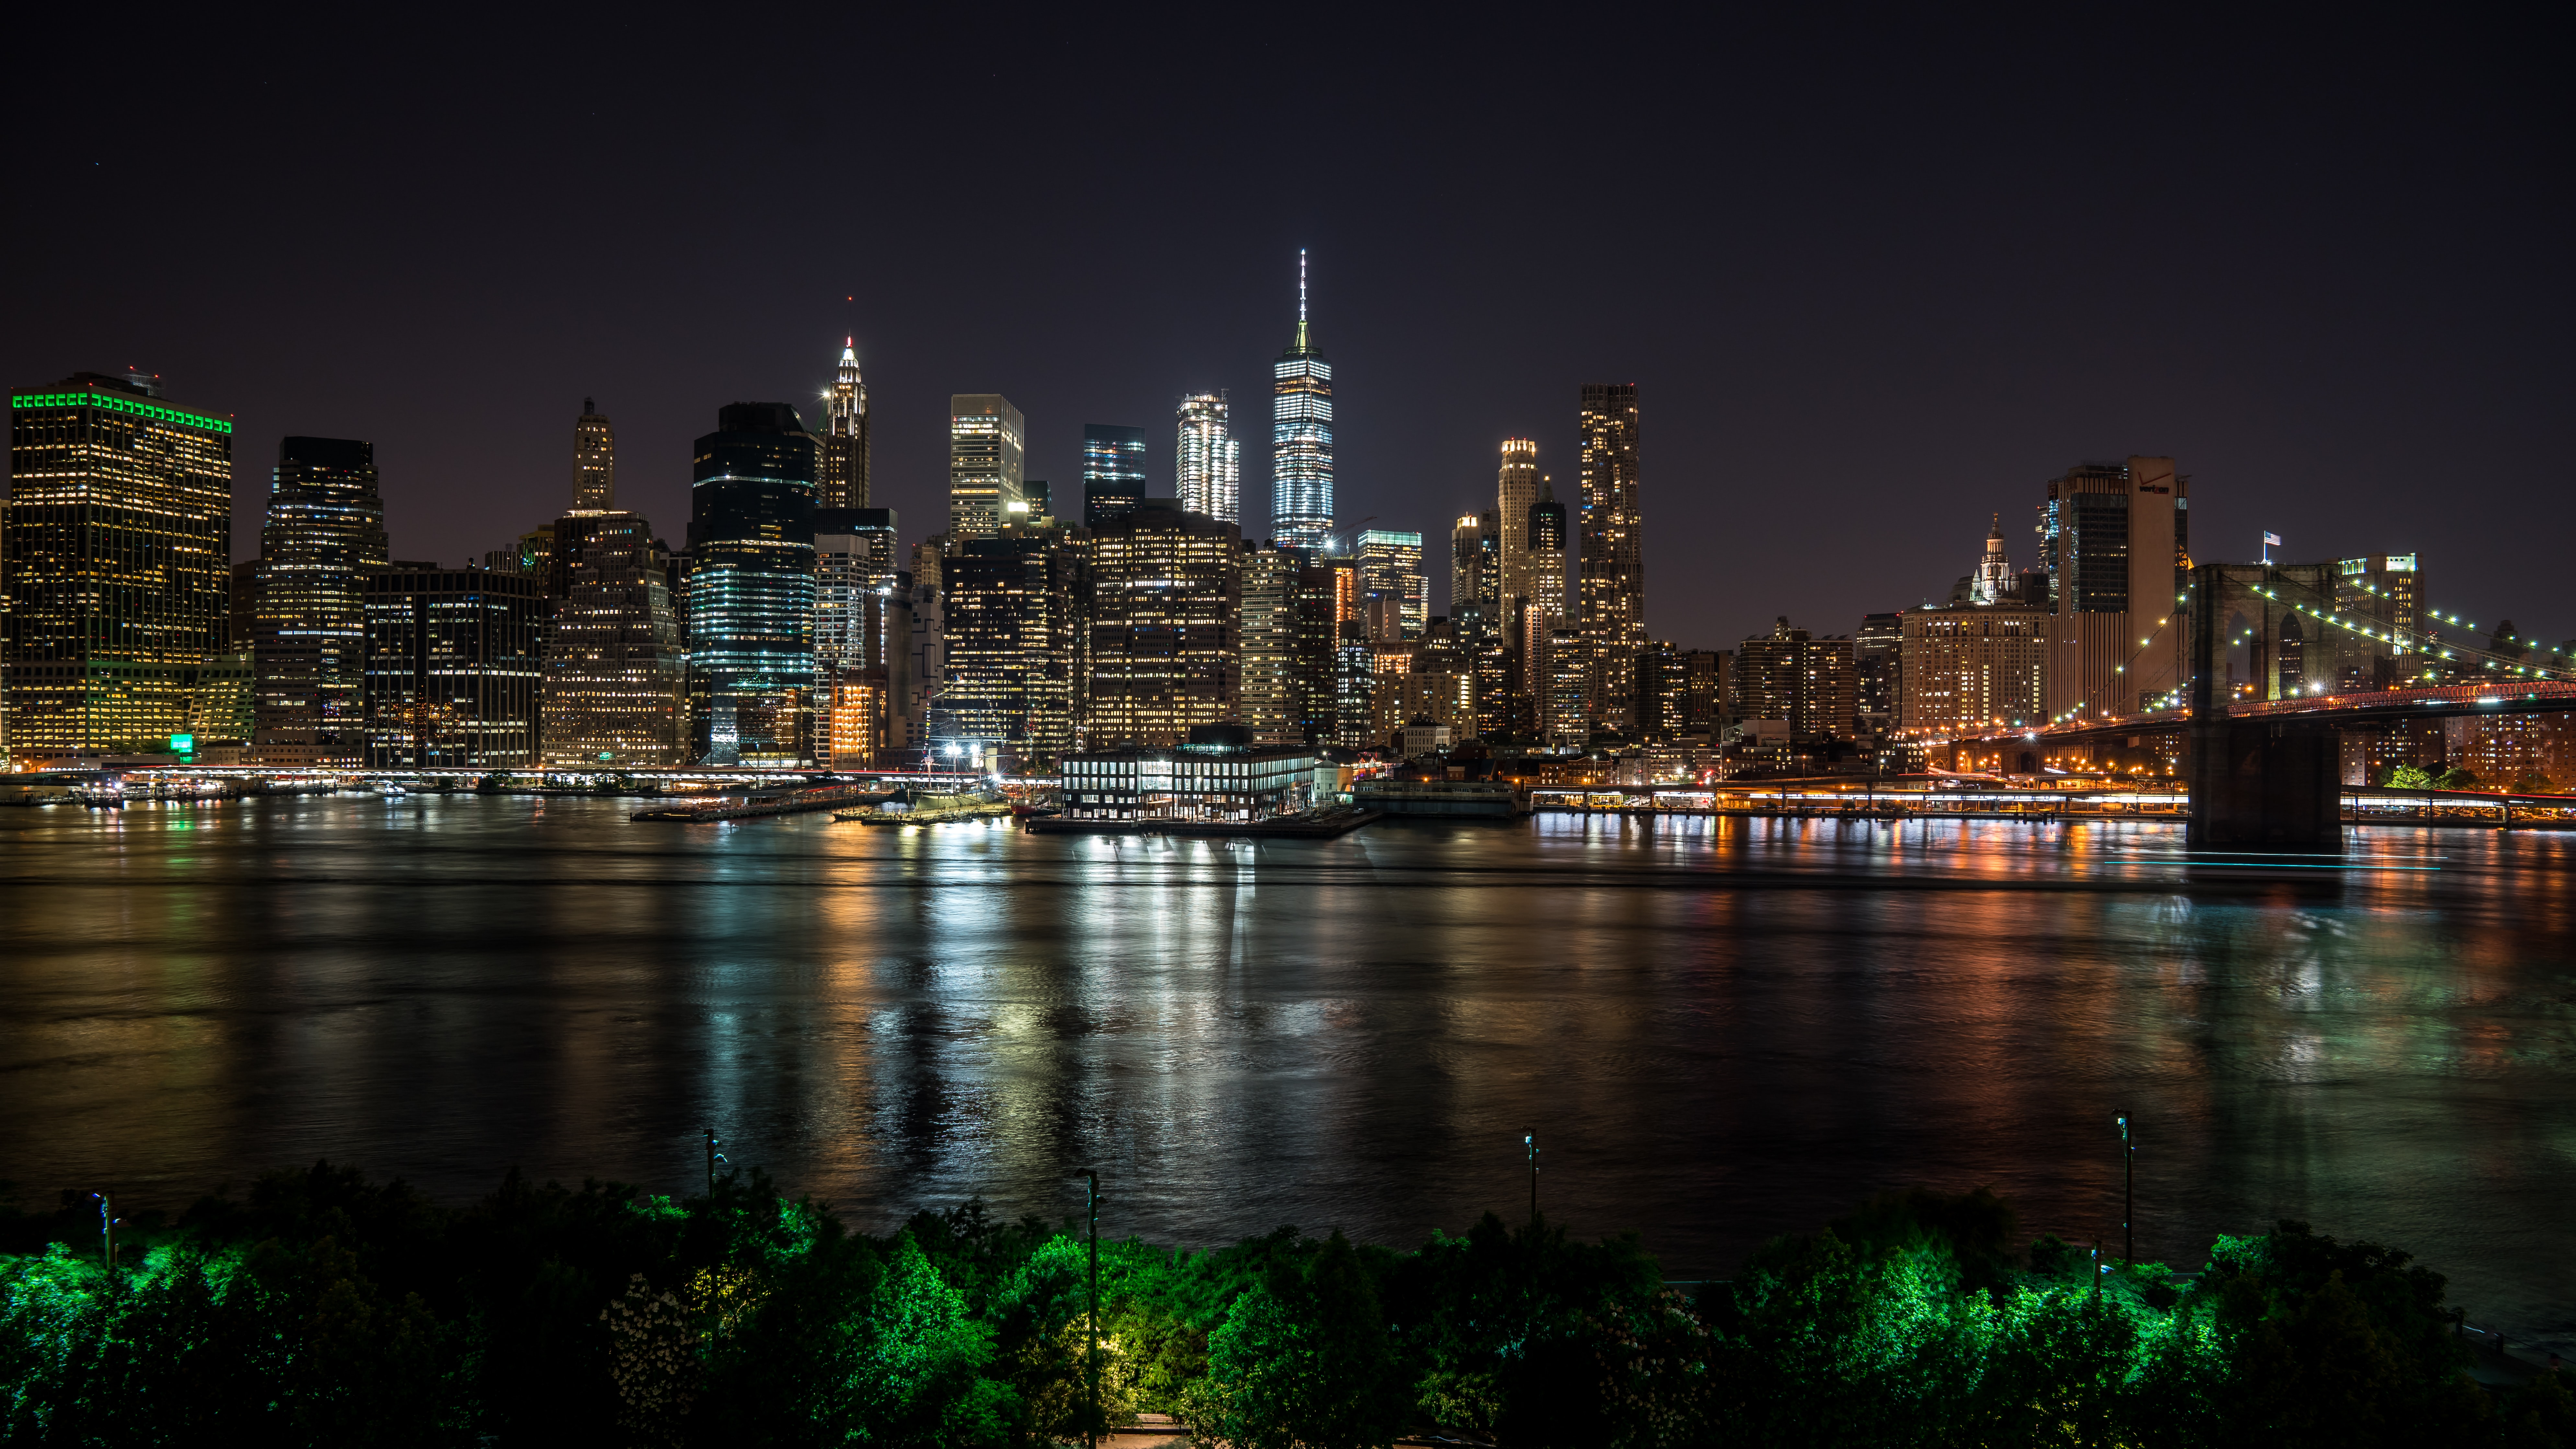 panoramic photography of city buildings at night